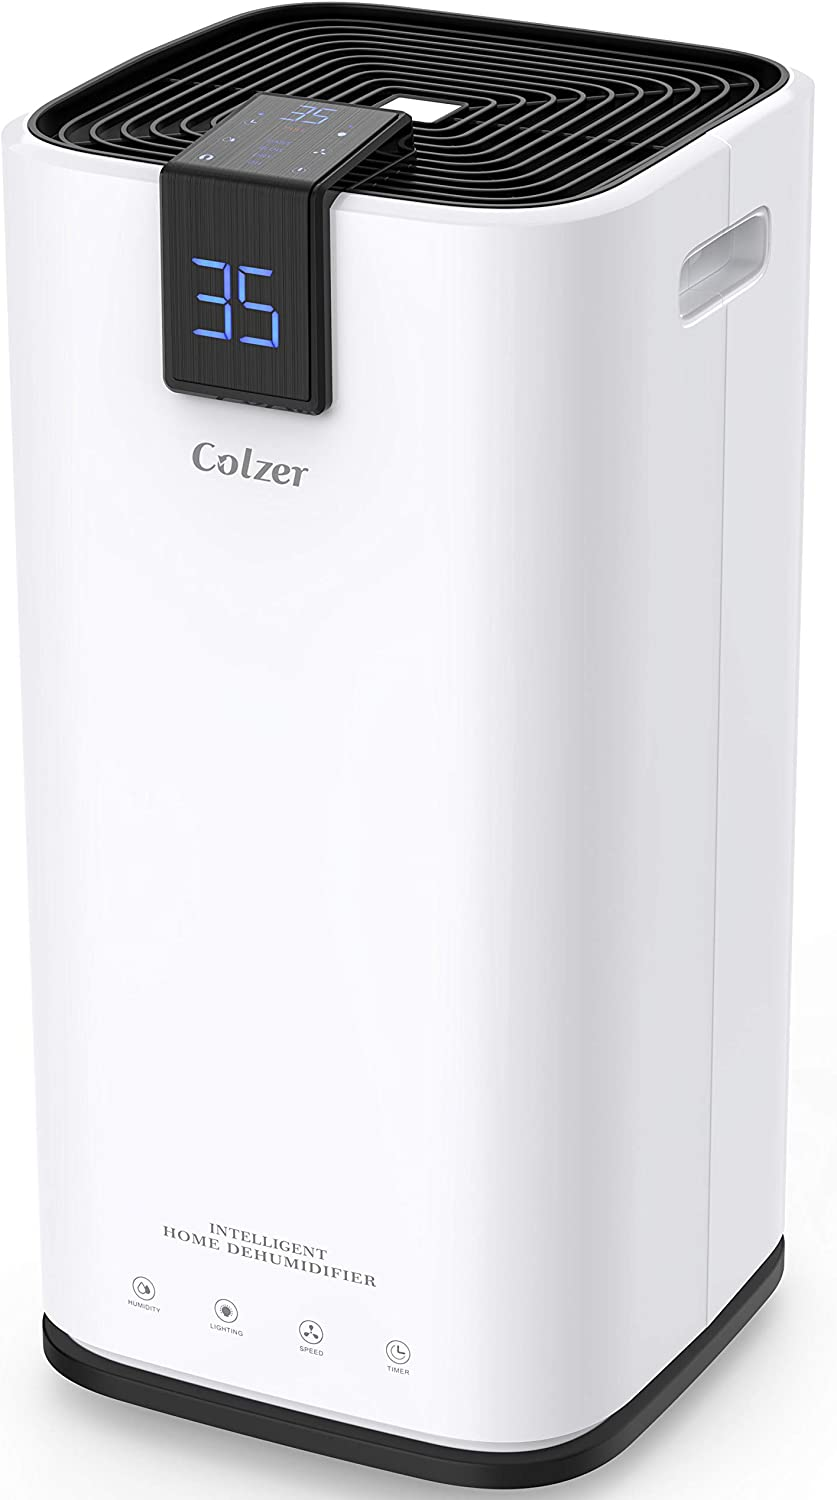 COLZER 70 Pints Home Dehumidifier Review